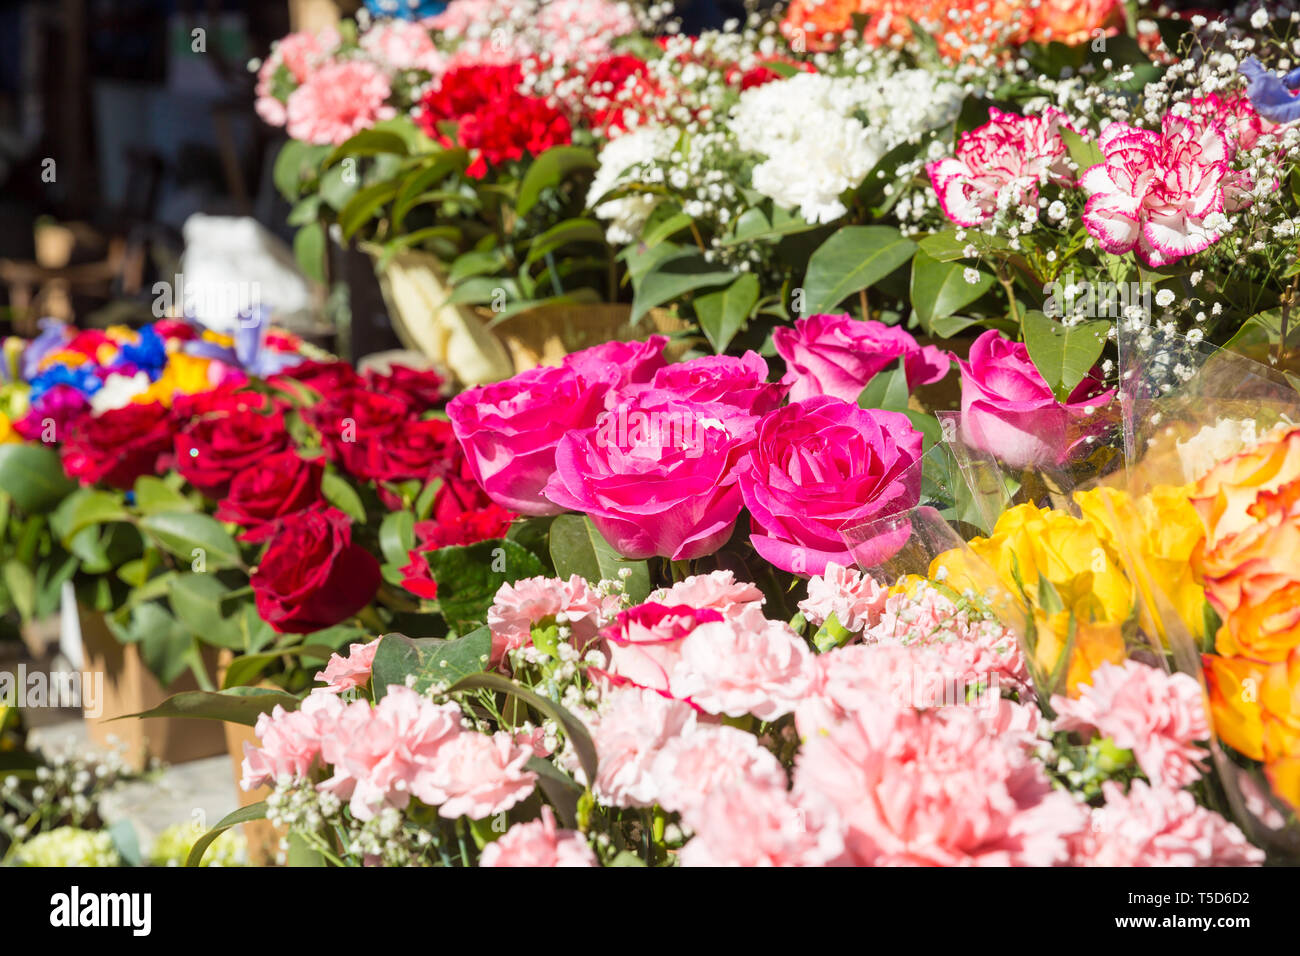 photo of flower bazaar for graphic and web design, for website or